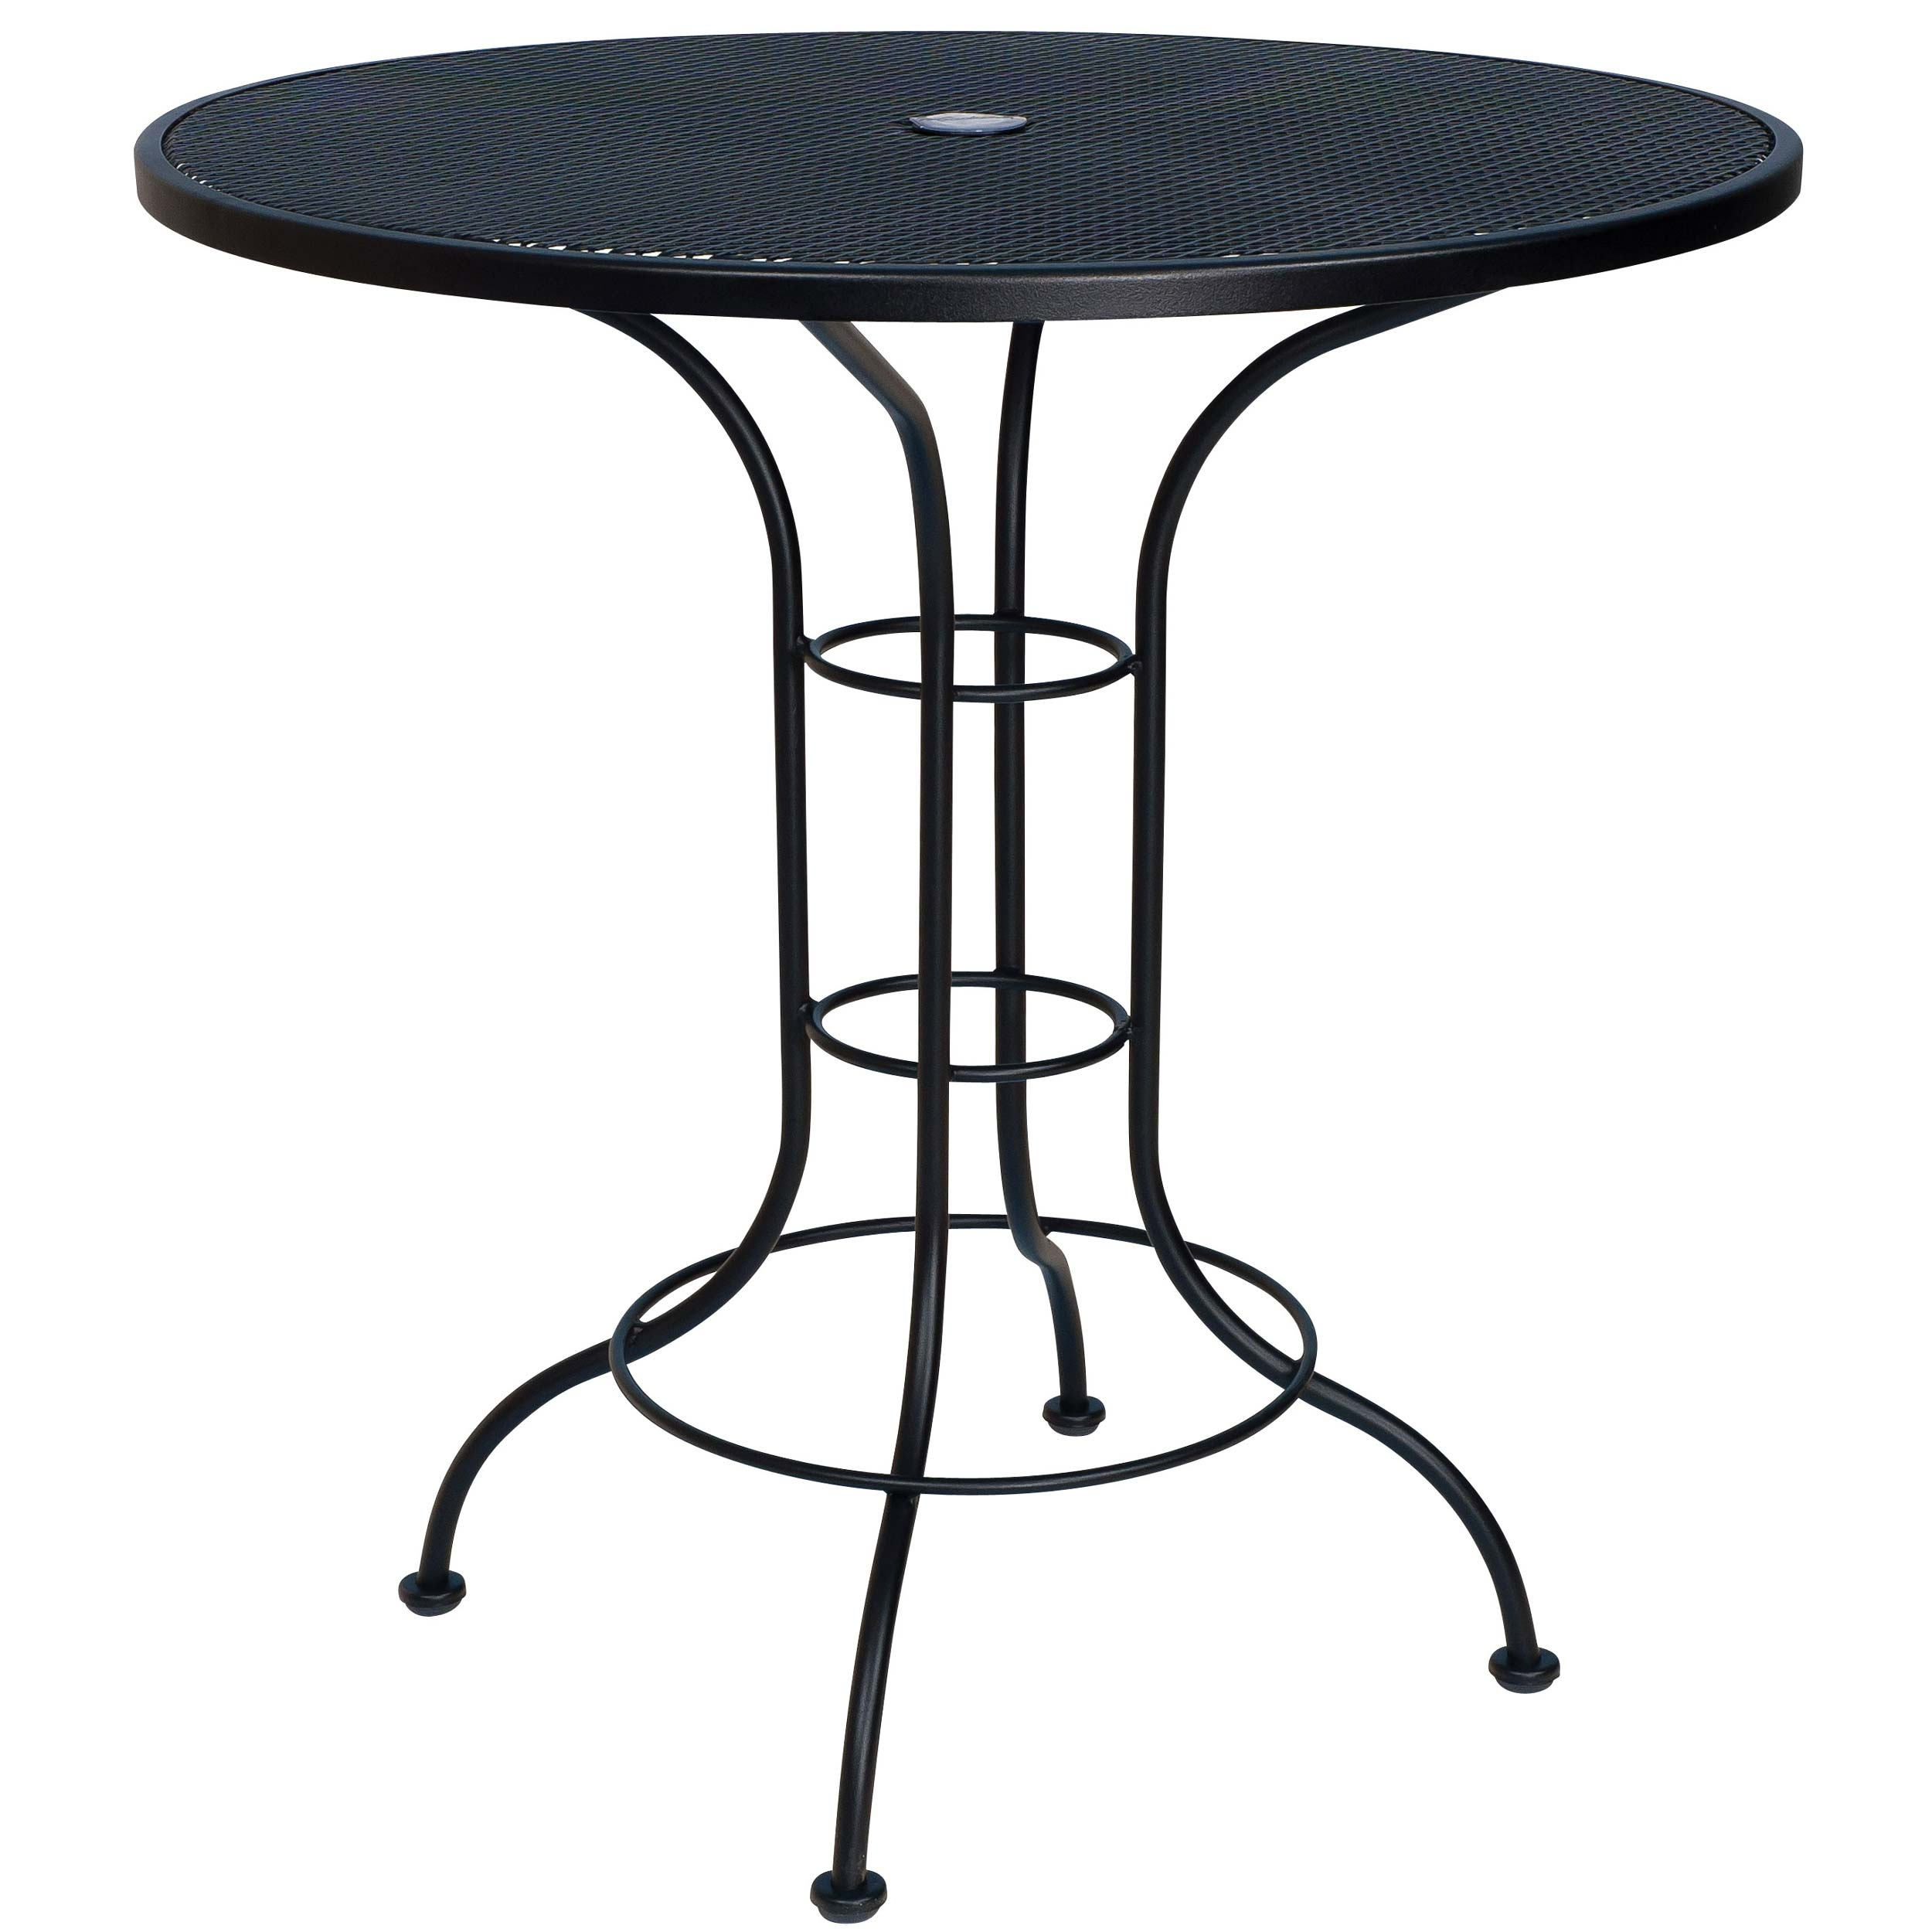 Outdoor round table top 36 - Pictured Is The 36 Round Counter Height Outdoor Bistro Table With Mesh Top From Woodard